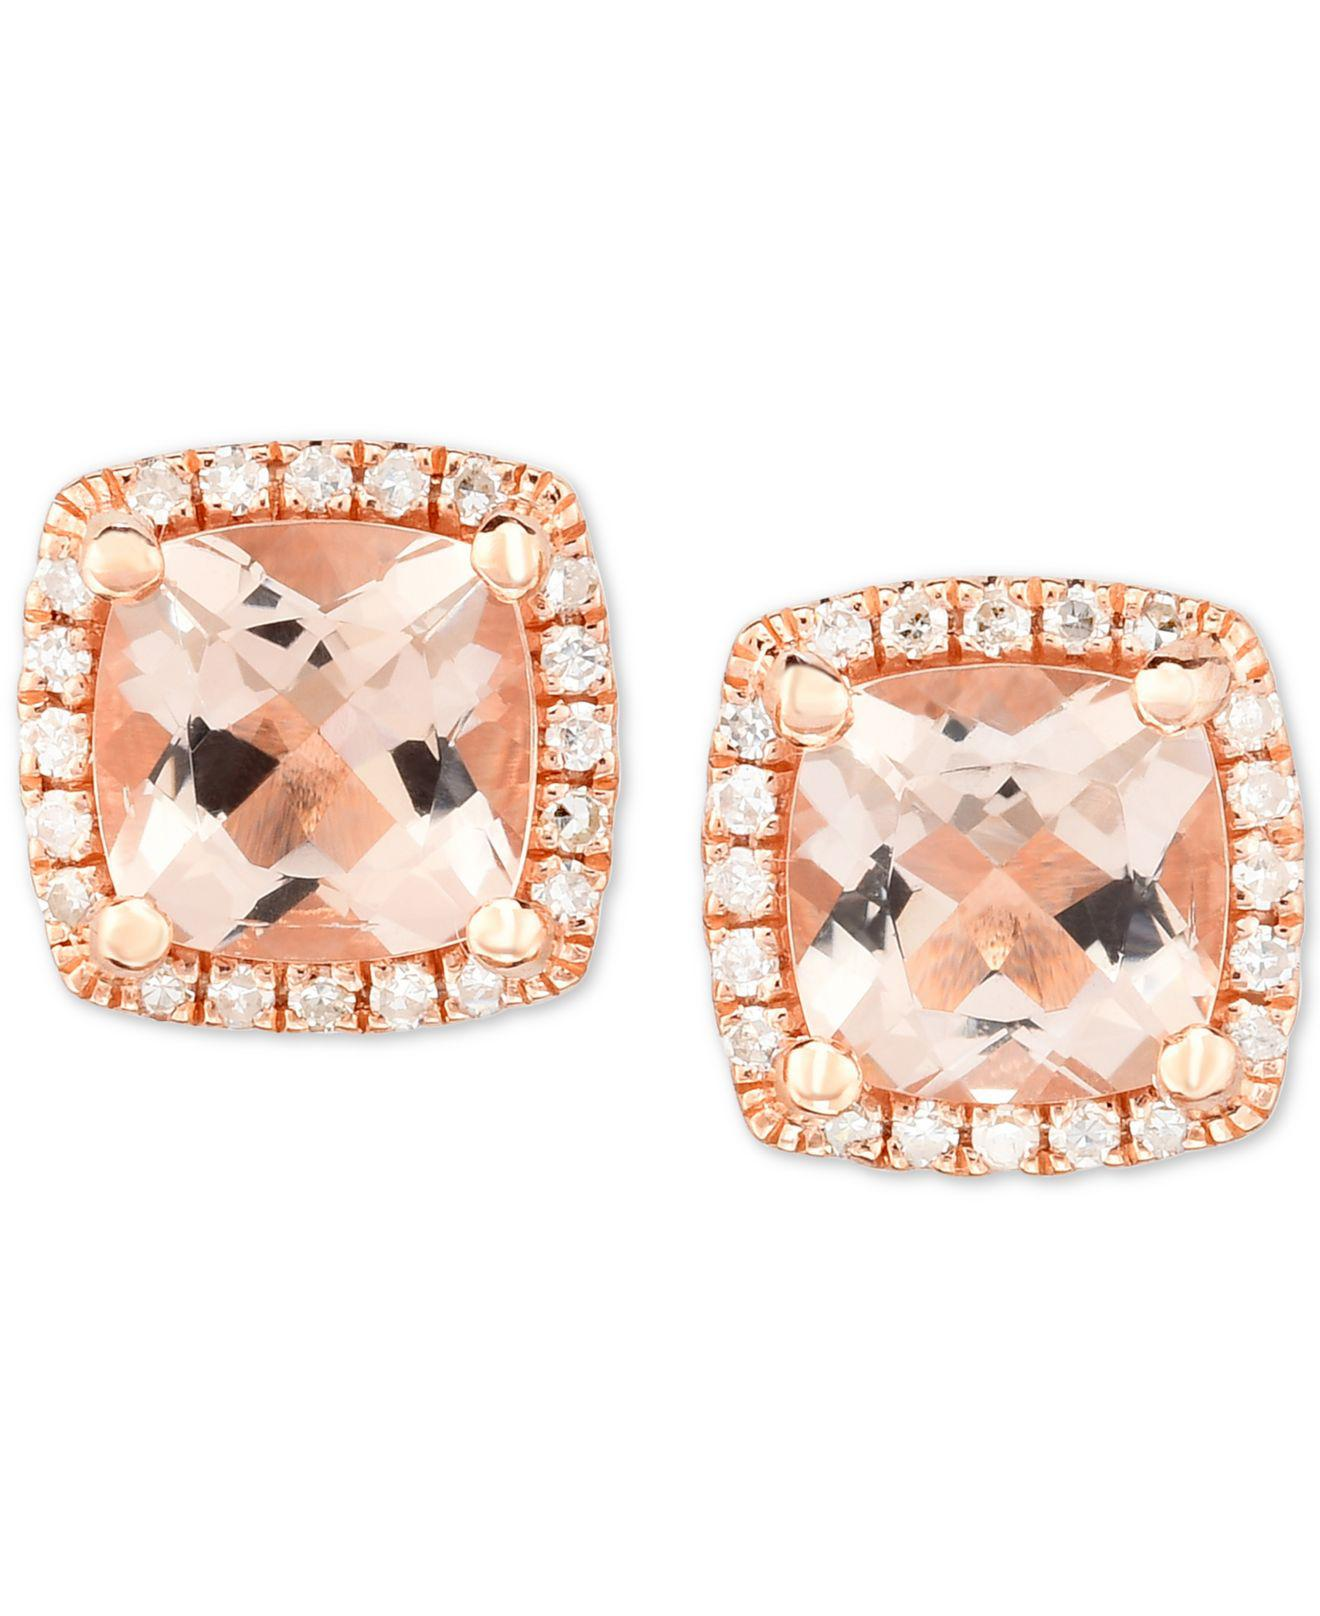 pin raw prong earrings organic beryl stone jewelry morganite stud earring set